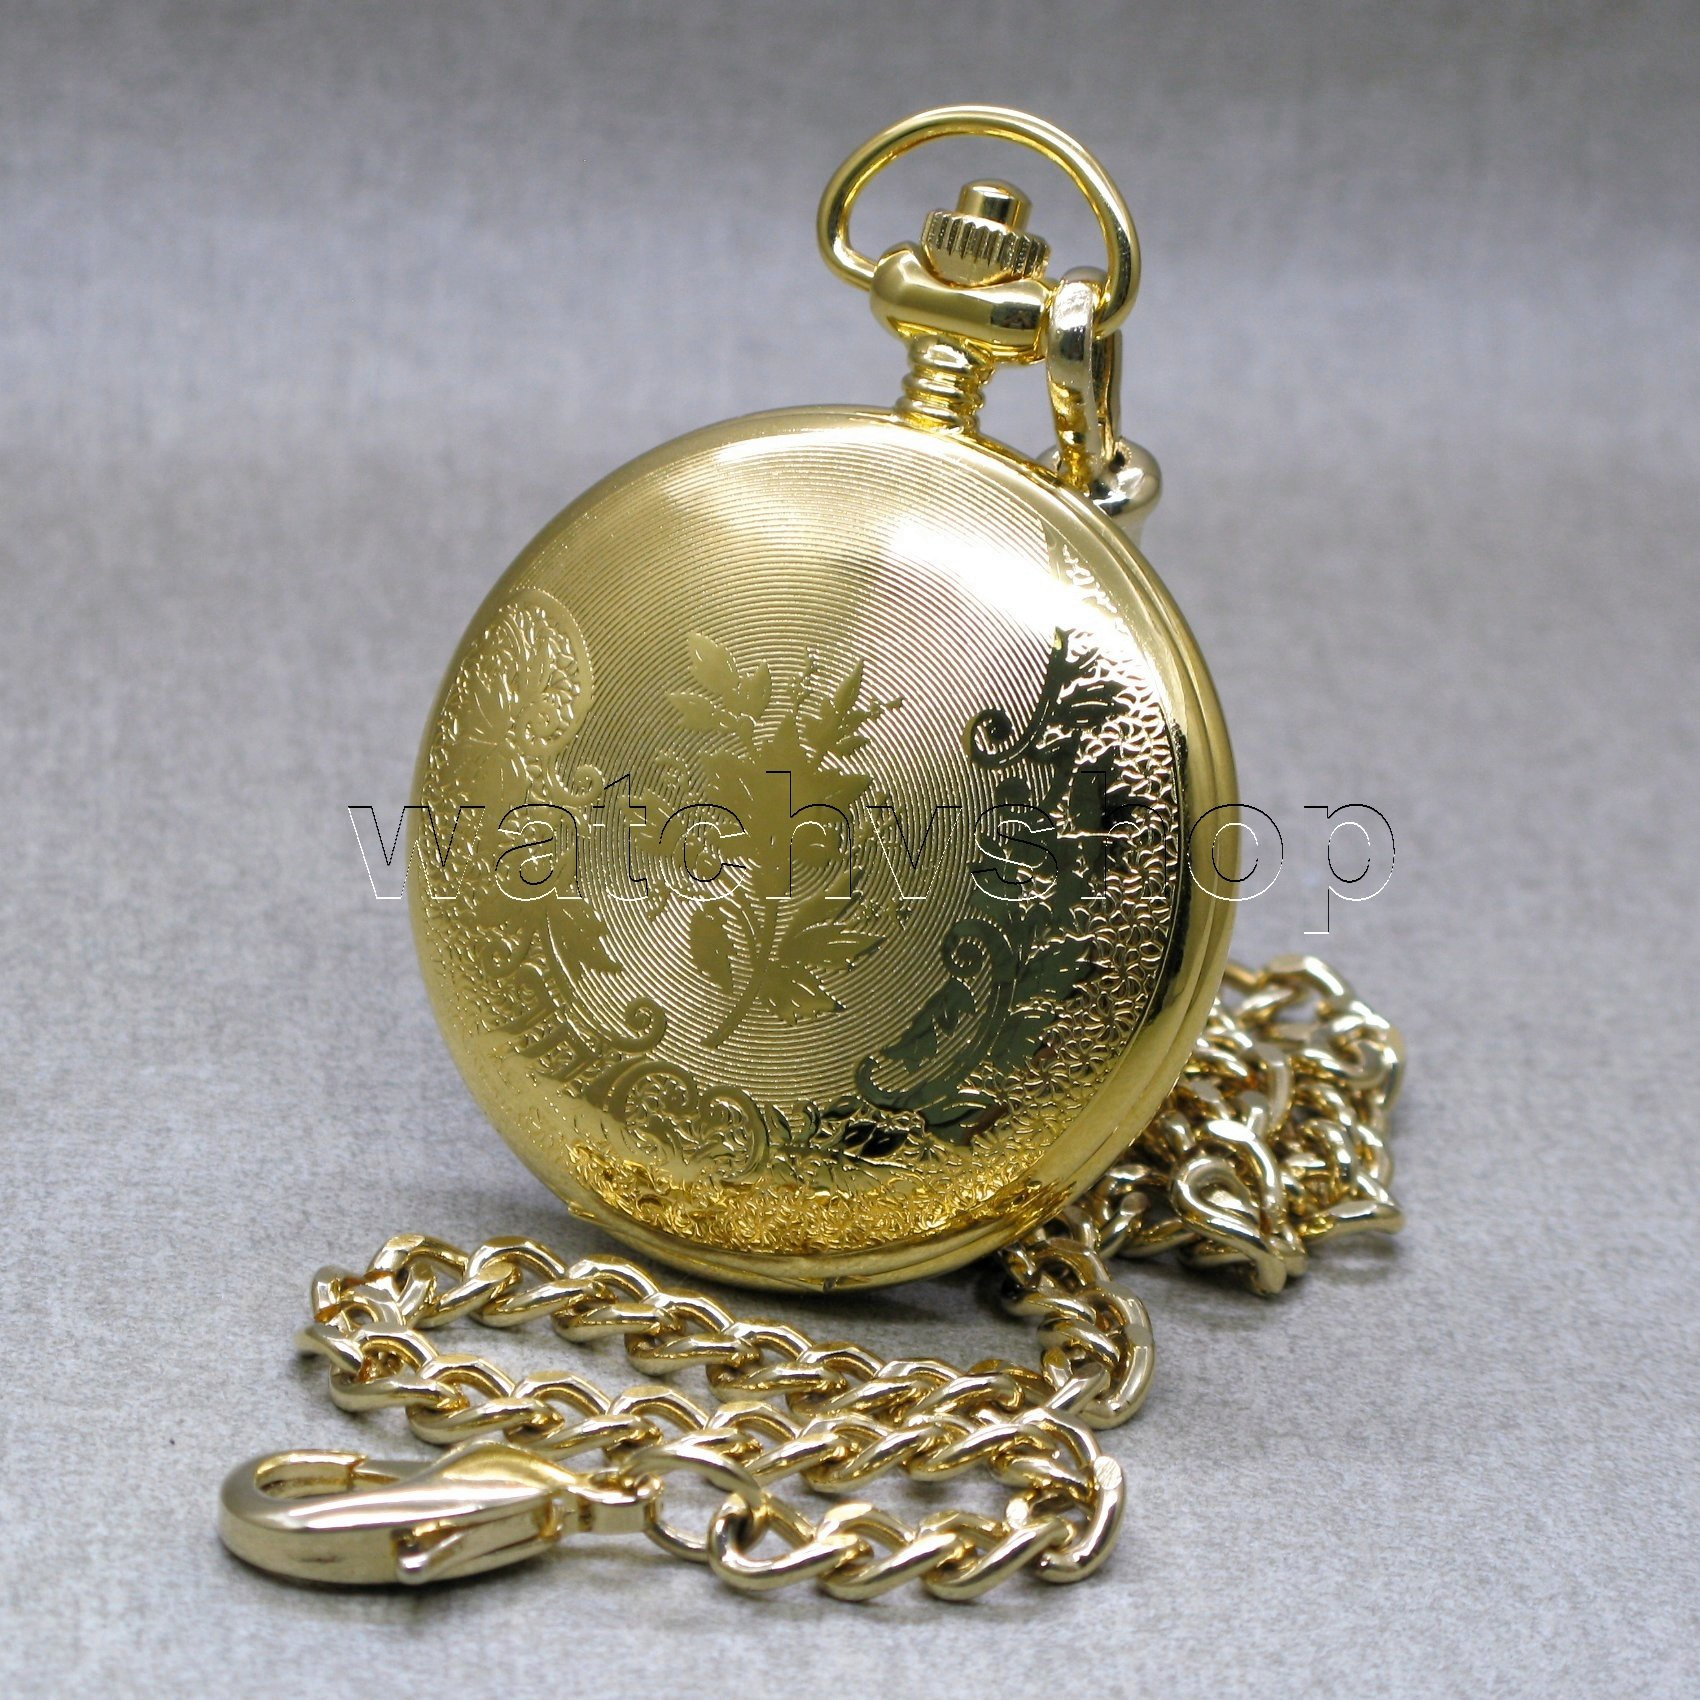 Gold Solid Brass Antique Mens Fashion Pocket Watch Fob Chain T Box P253